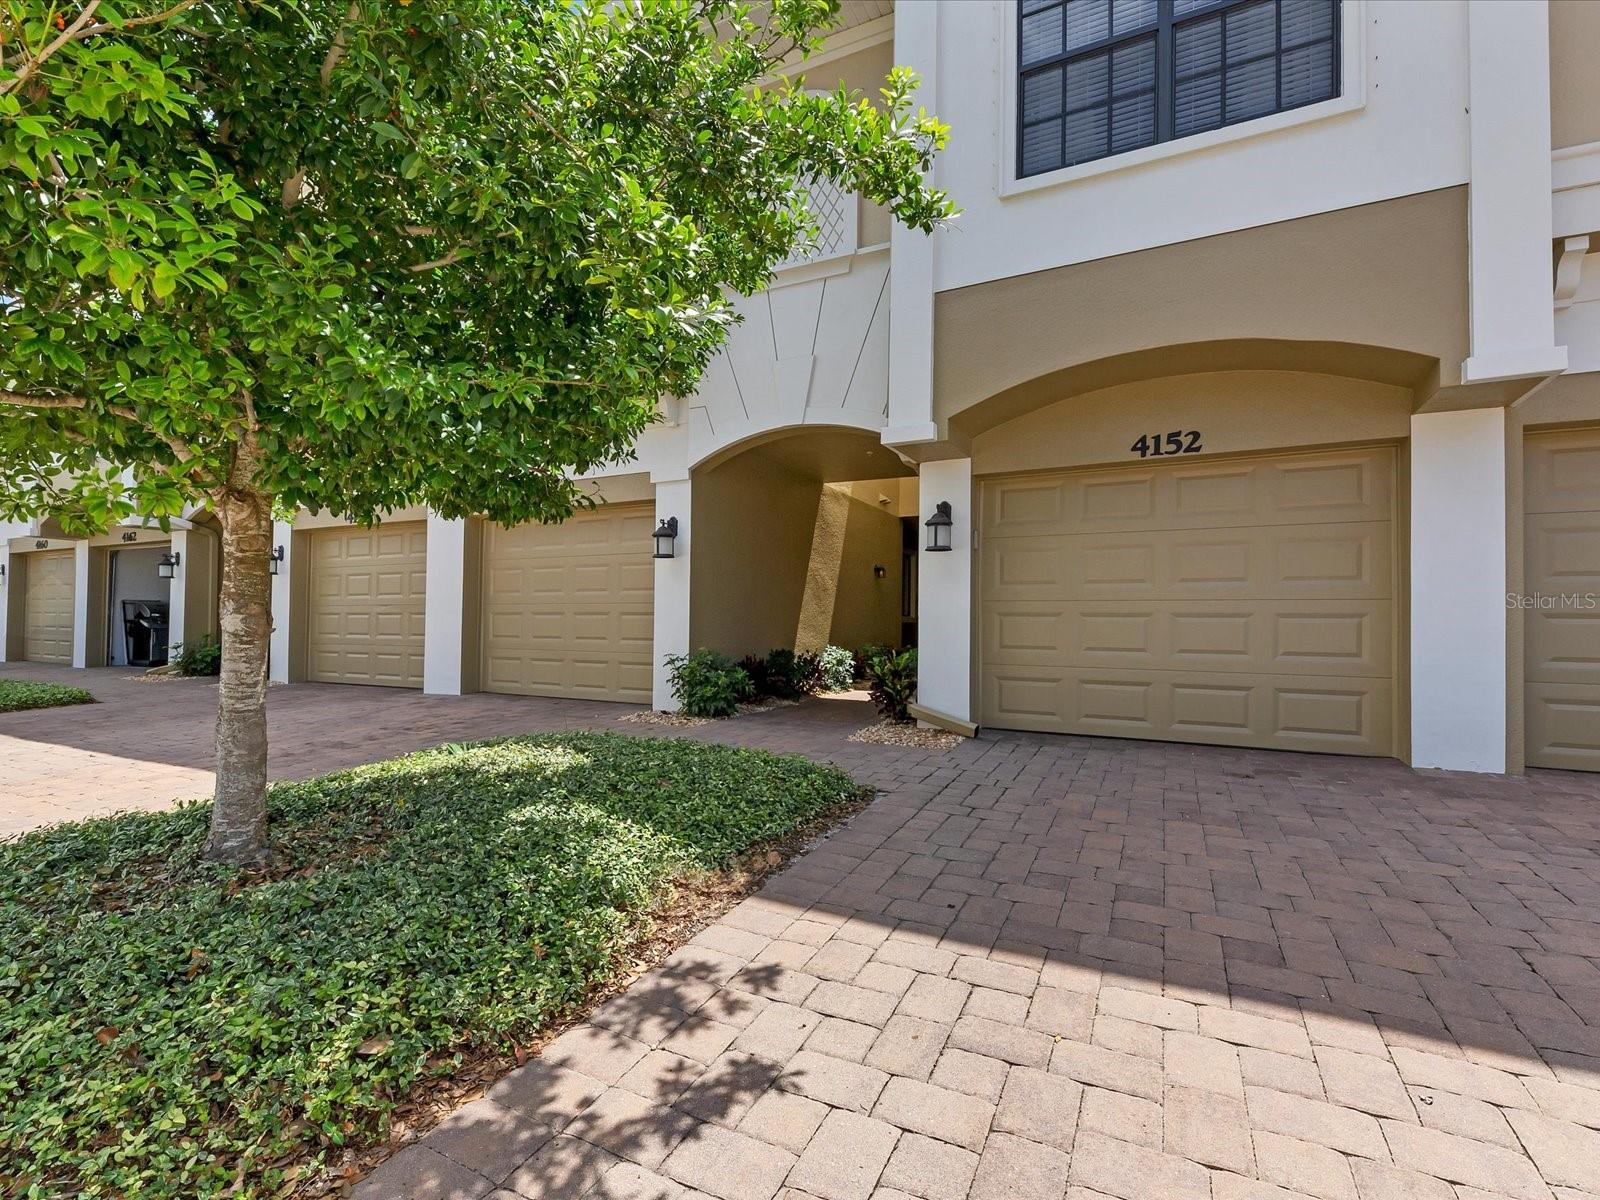 Primary photo of recently sold MLS# A4502160